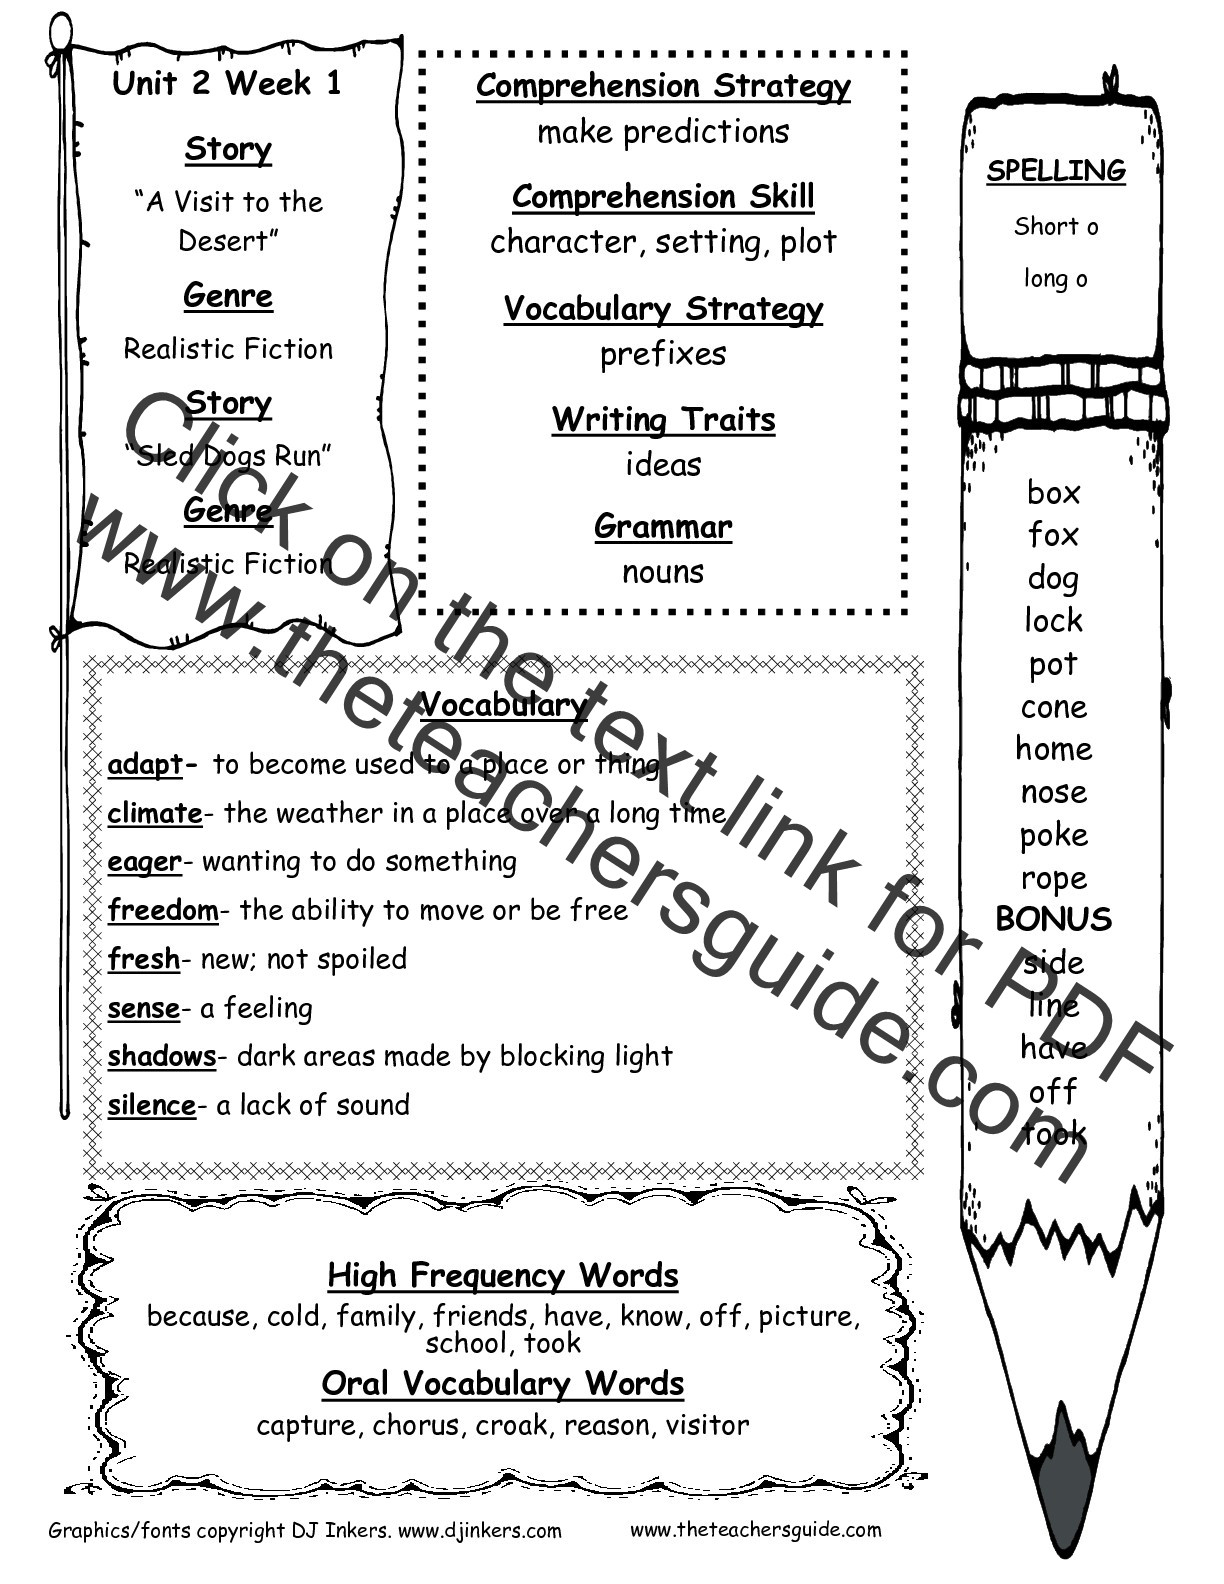 Social Studies Worksheets 2nd Grade Mcgraw Hill Wonders Second Grade Resources and Printouts